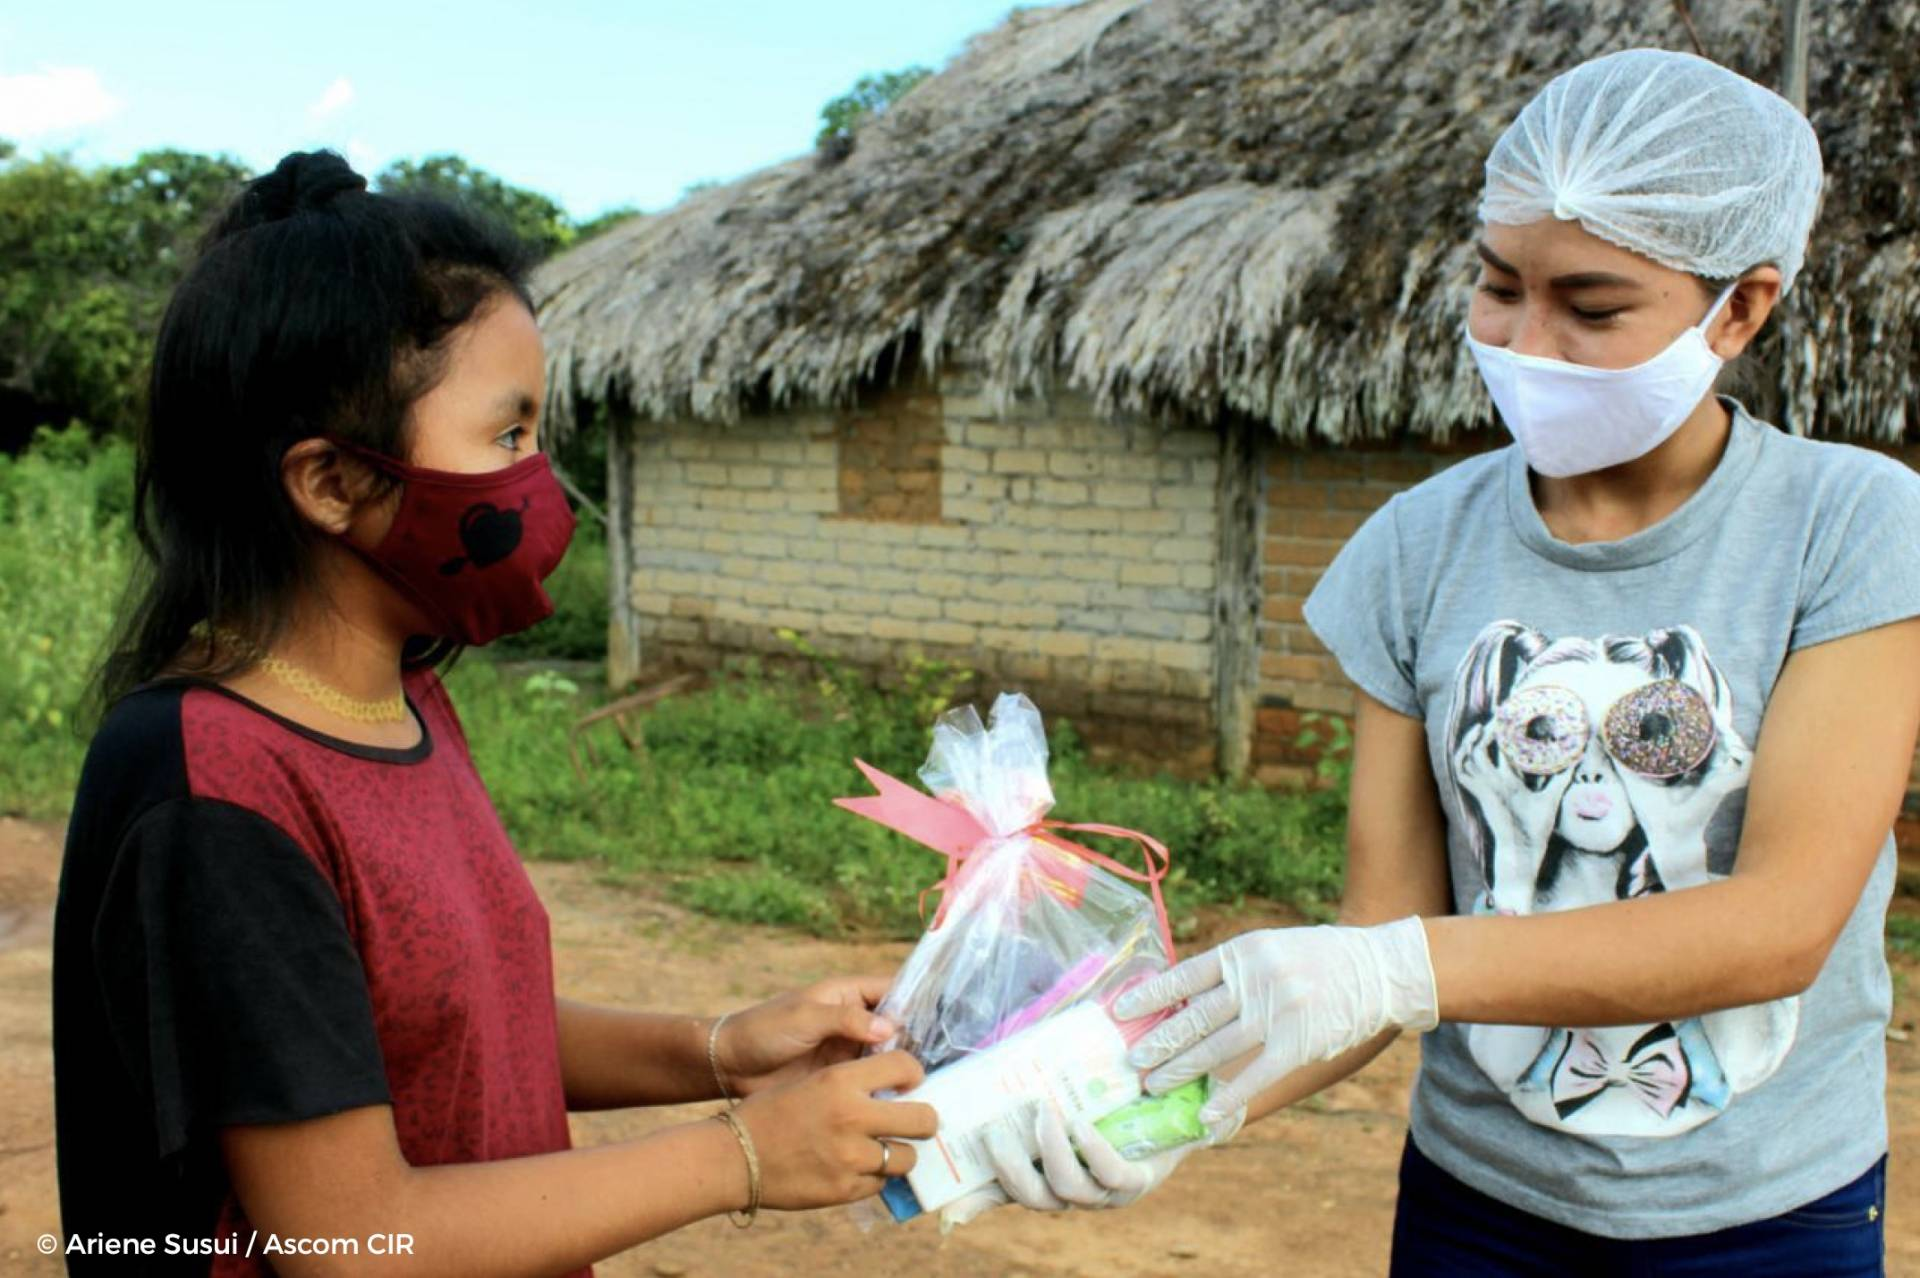 Kits include hygiene products to help communities protect themselves against COVID-19.